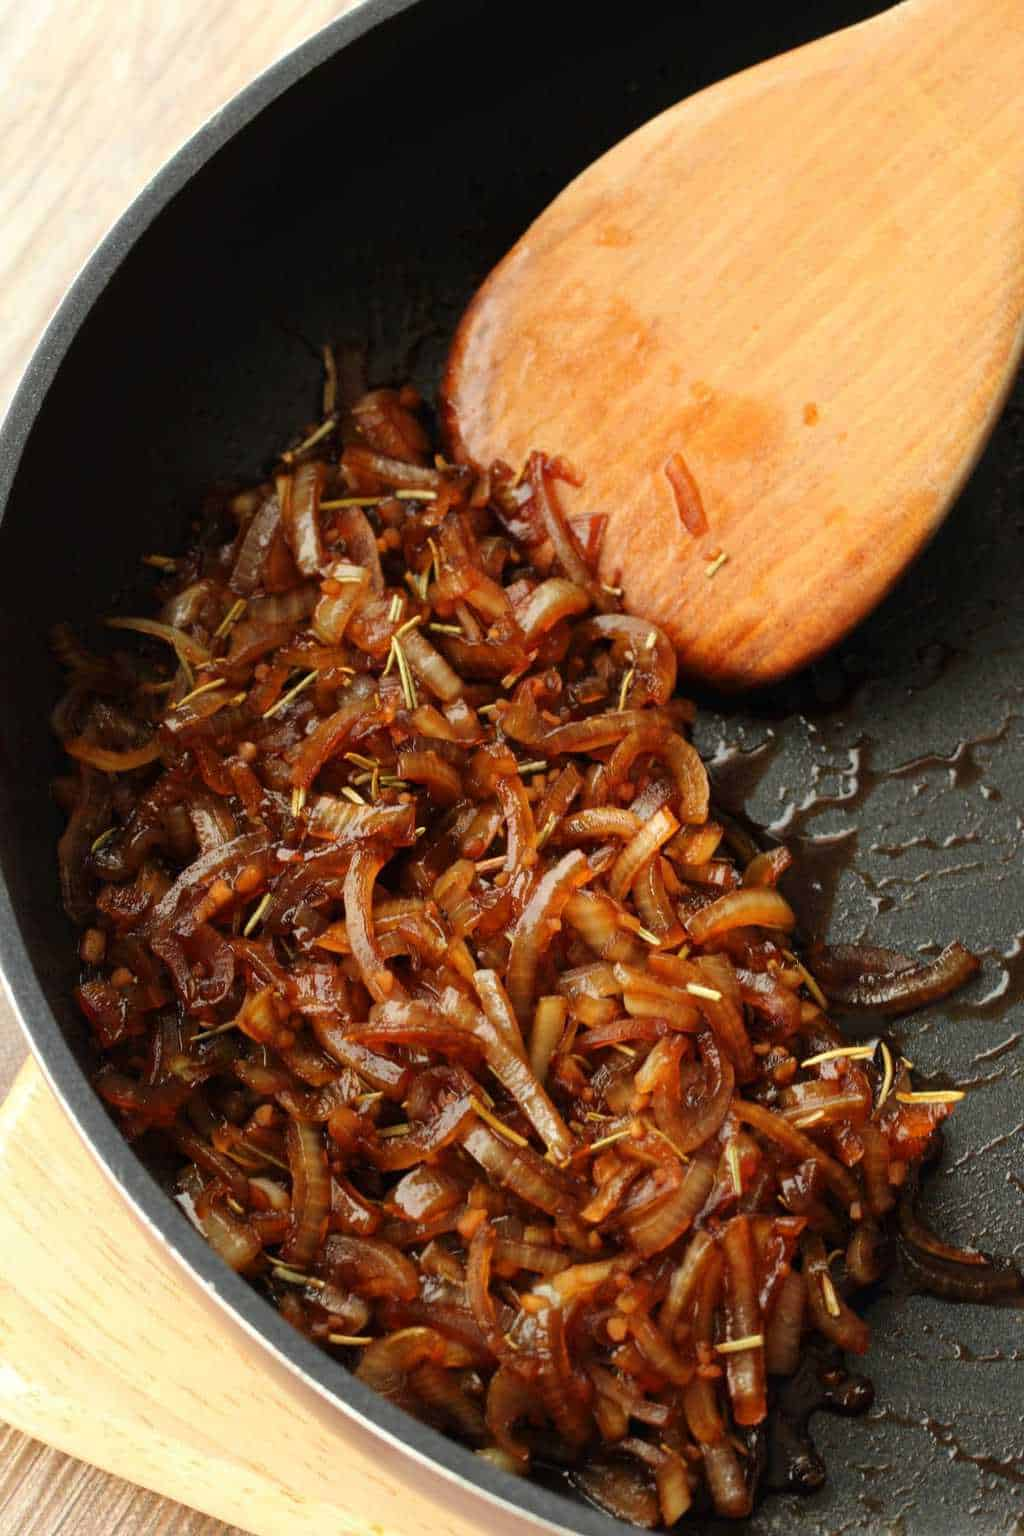 Fried onions and garlic in soy sauce and spices in a frying pan with a wooden spoon.